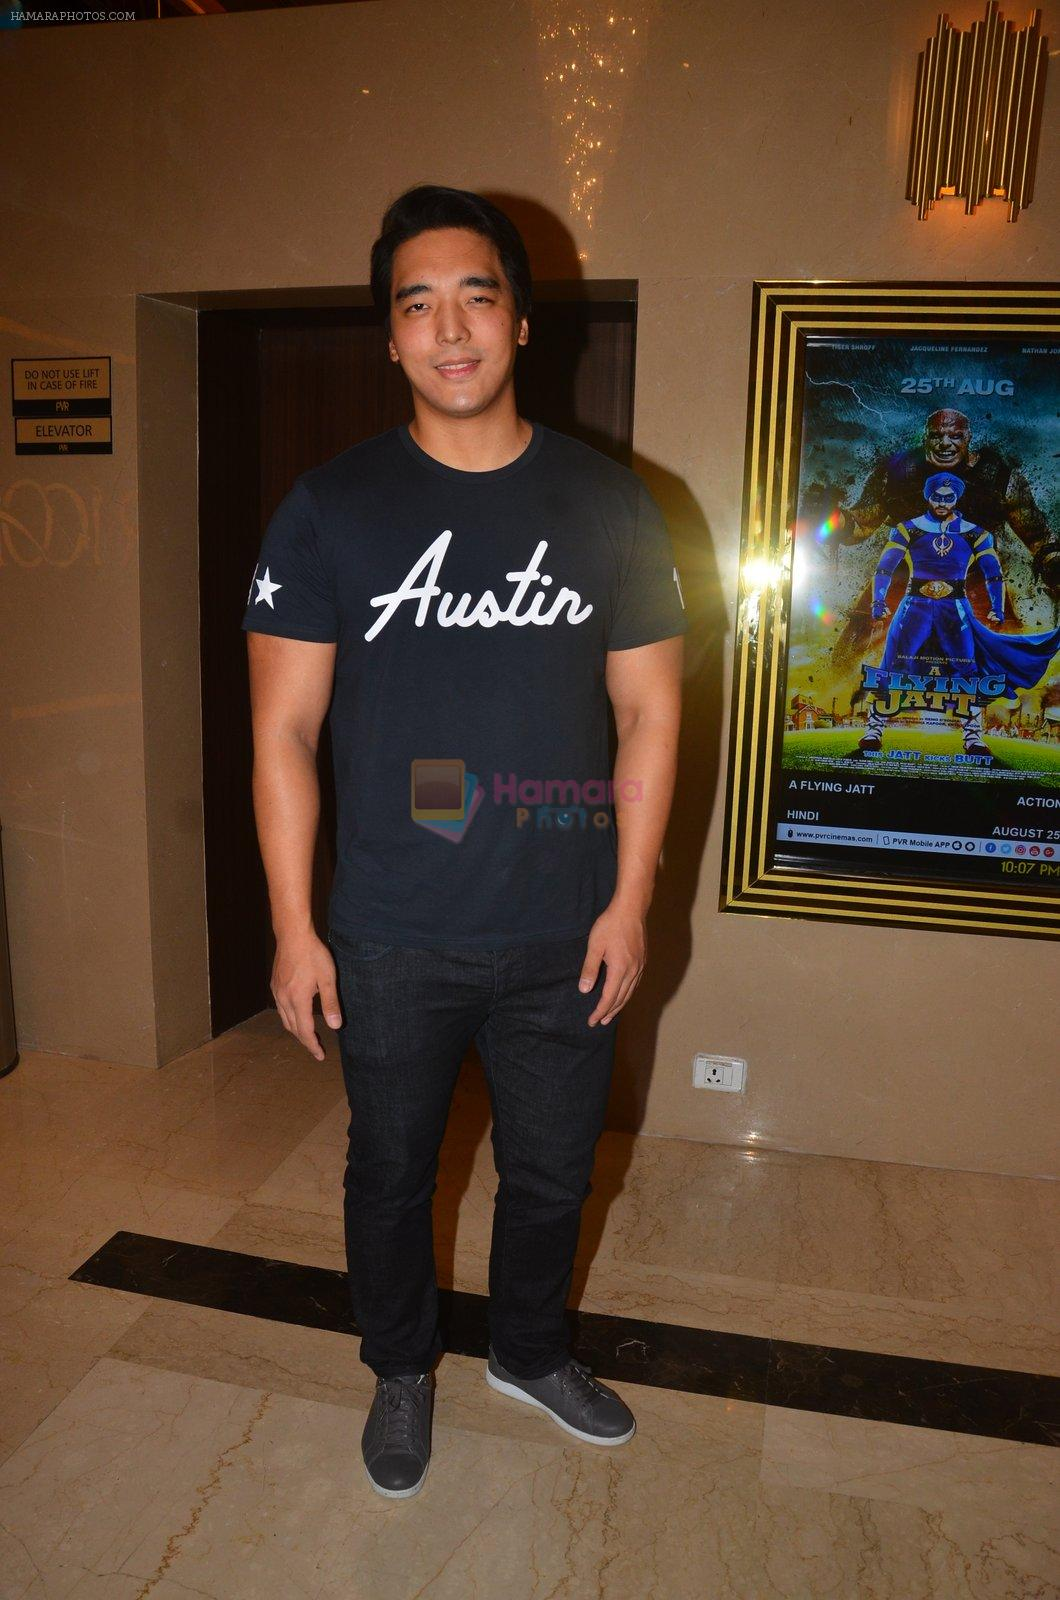 at The Flying Jatt premiere on 24th Aug 2016